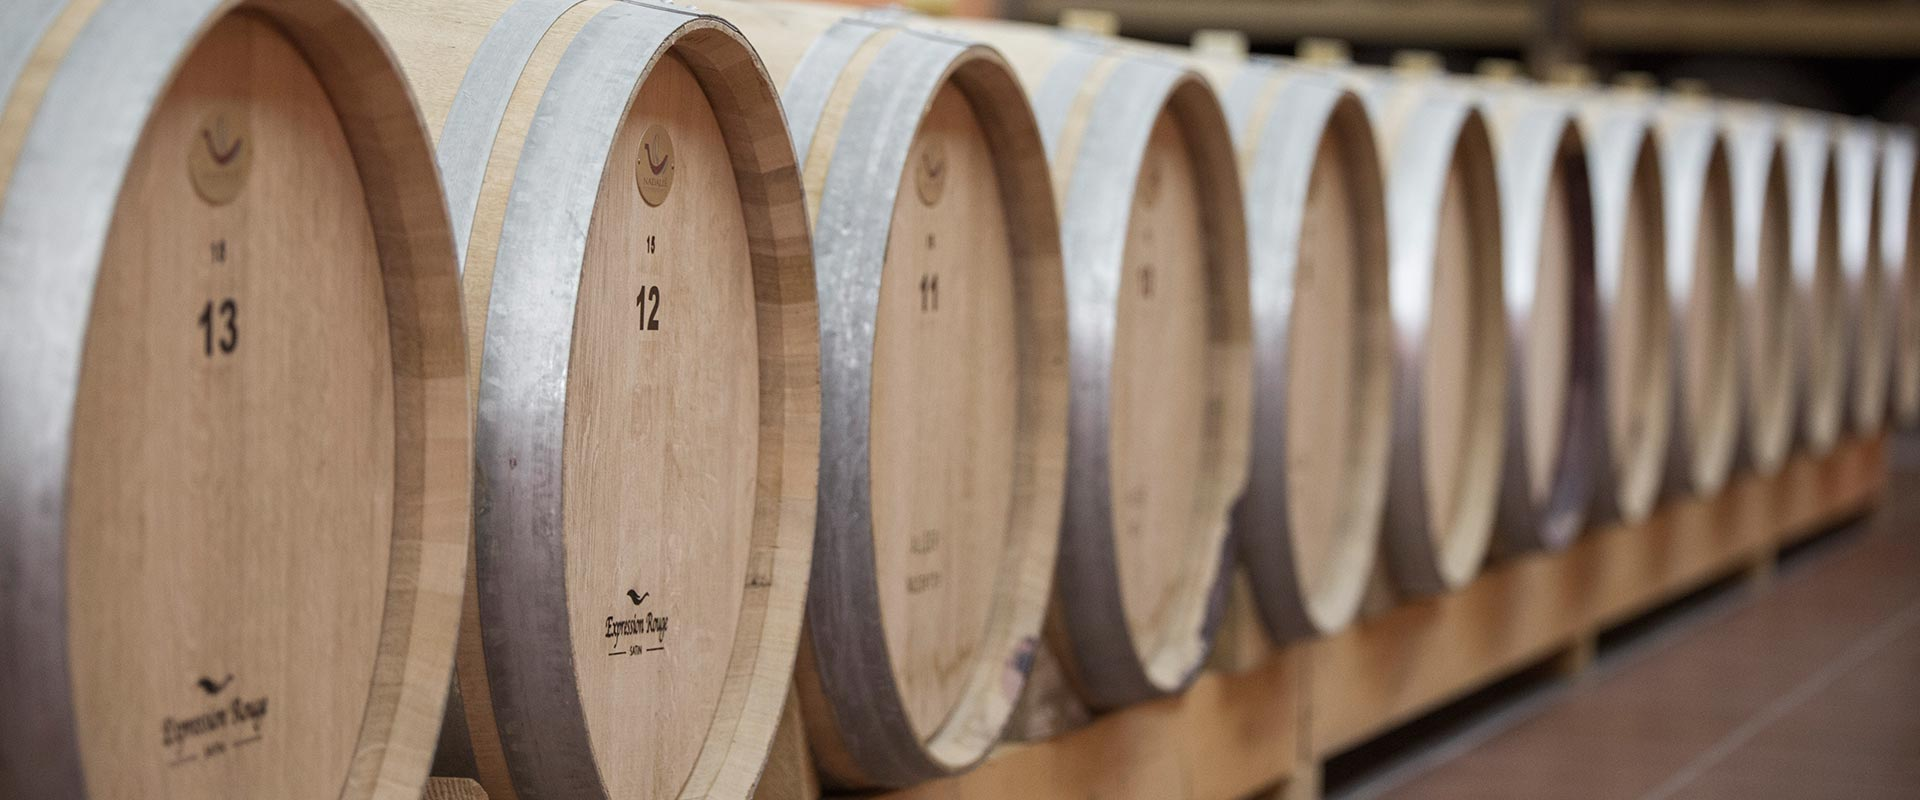 Nestor Winery - Our Winery